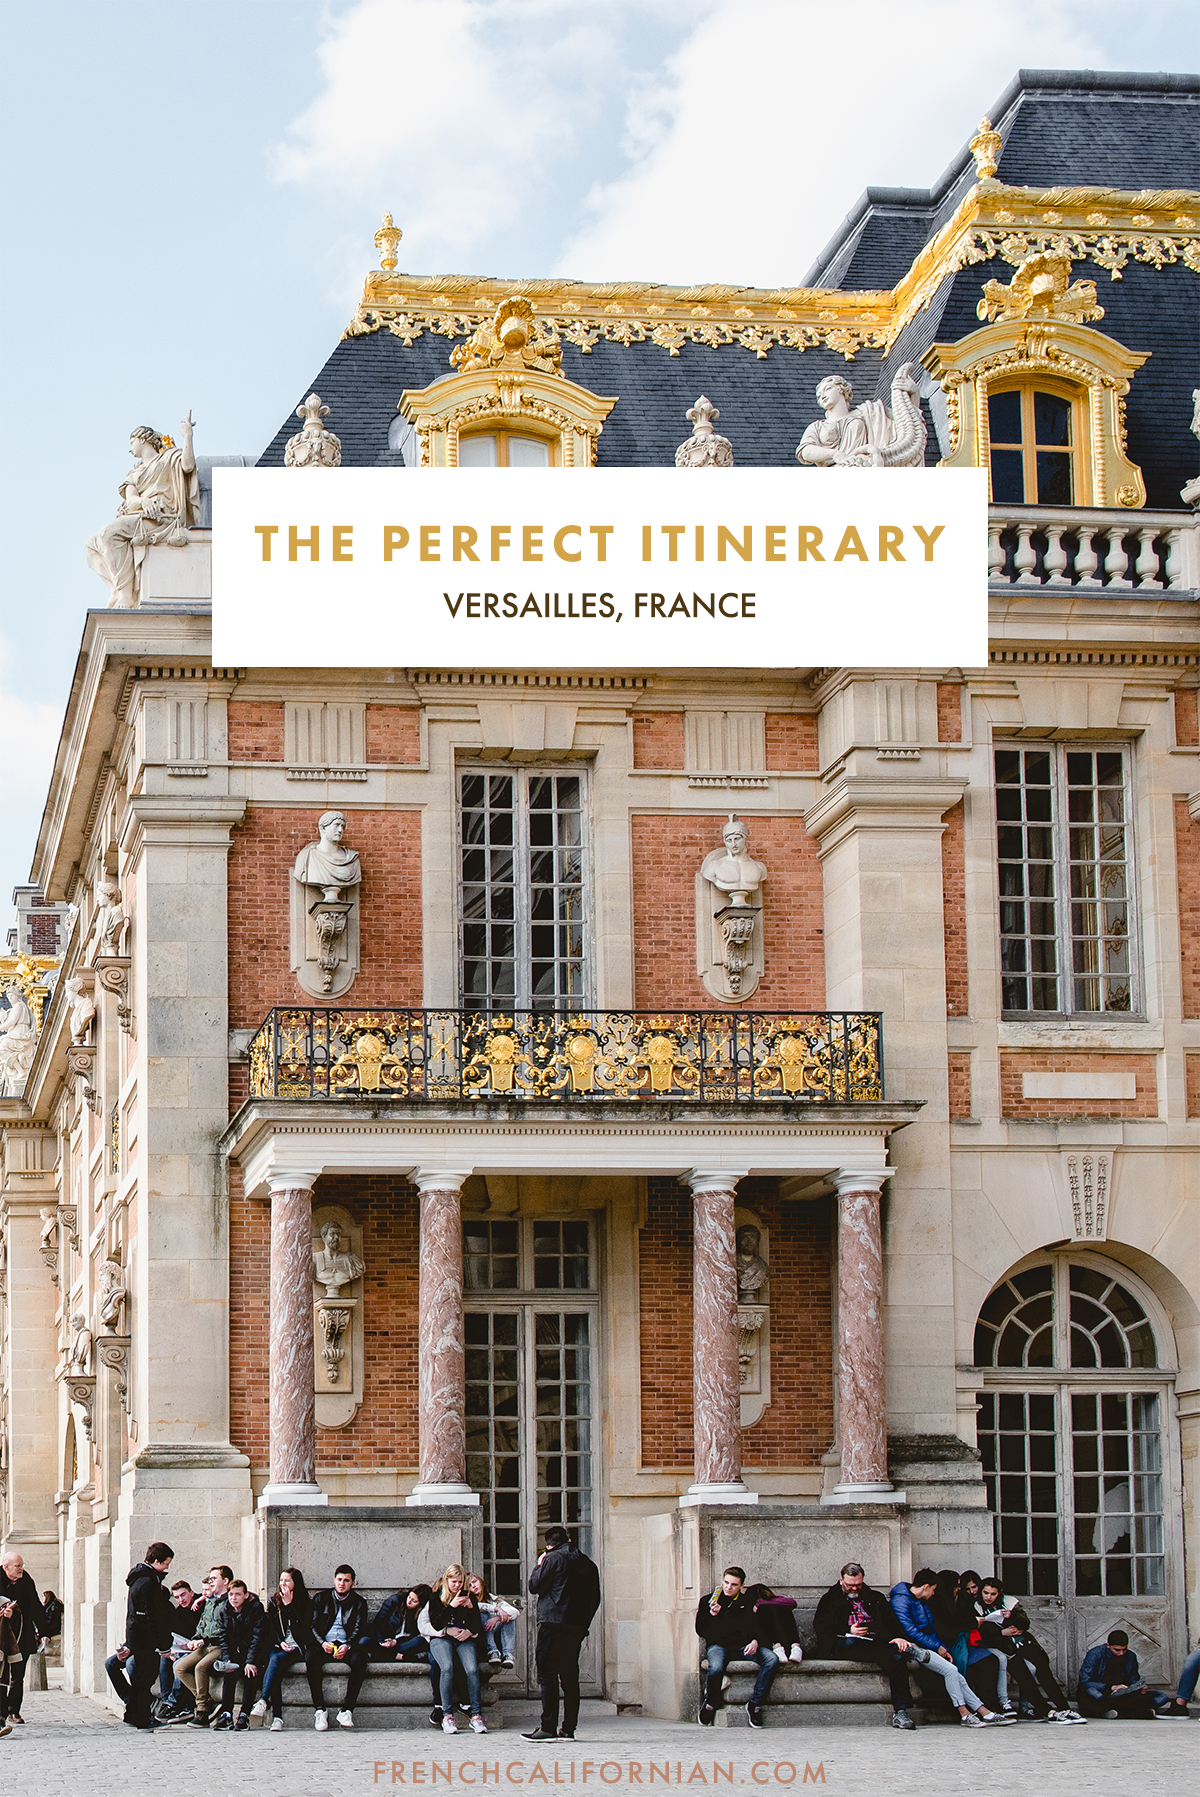 The Best Itinerary for a Day Trip to Versailles, France | French Californian